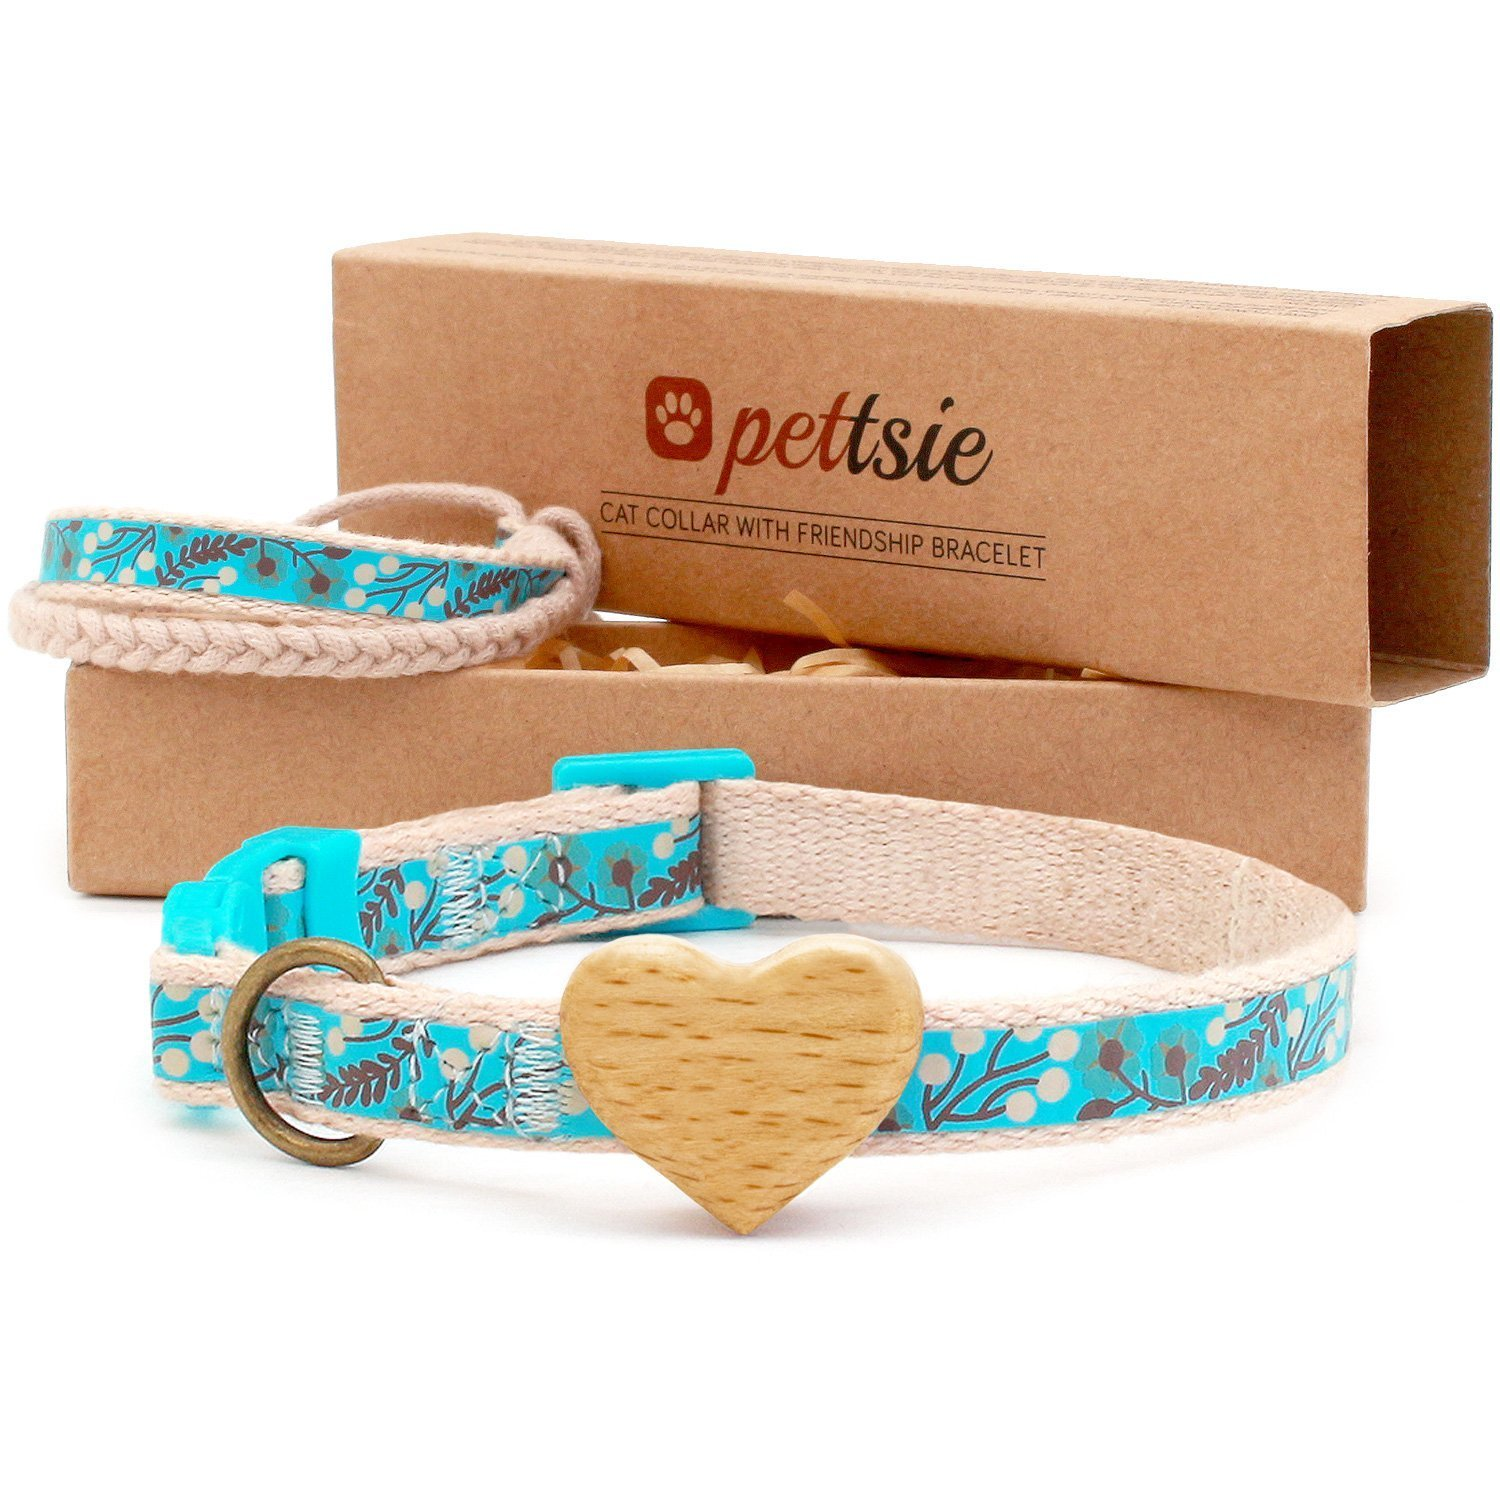 Turquoise Pettsie Cat Collar Breakaway Safety with Heart and Friendship Bracelet for You, Natural and Soft 100% Cotton for Extra Comfort, Strong and Durable, Easy Adjustable Size 8-11, Turquoise